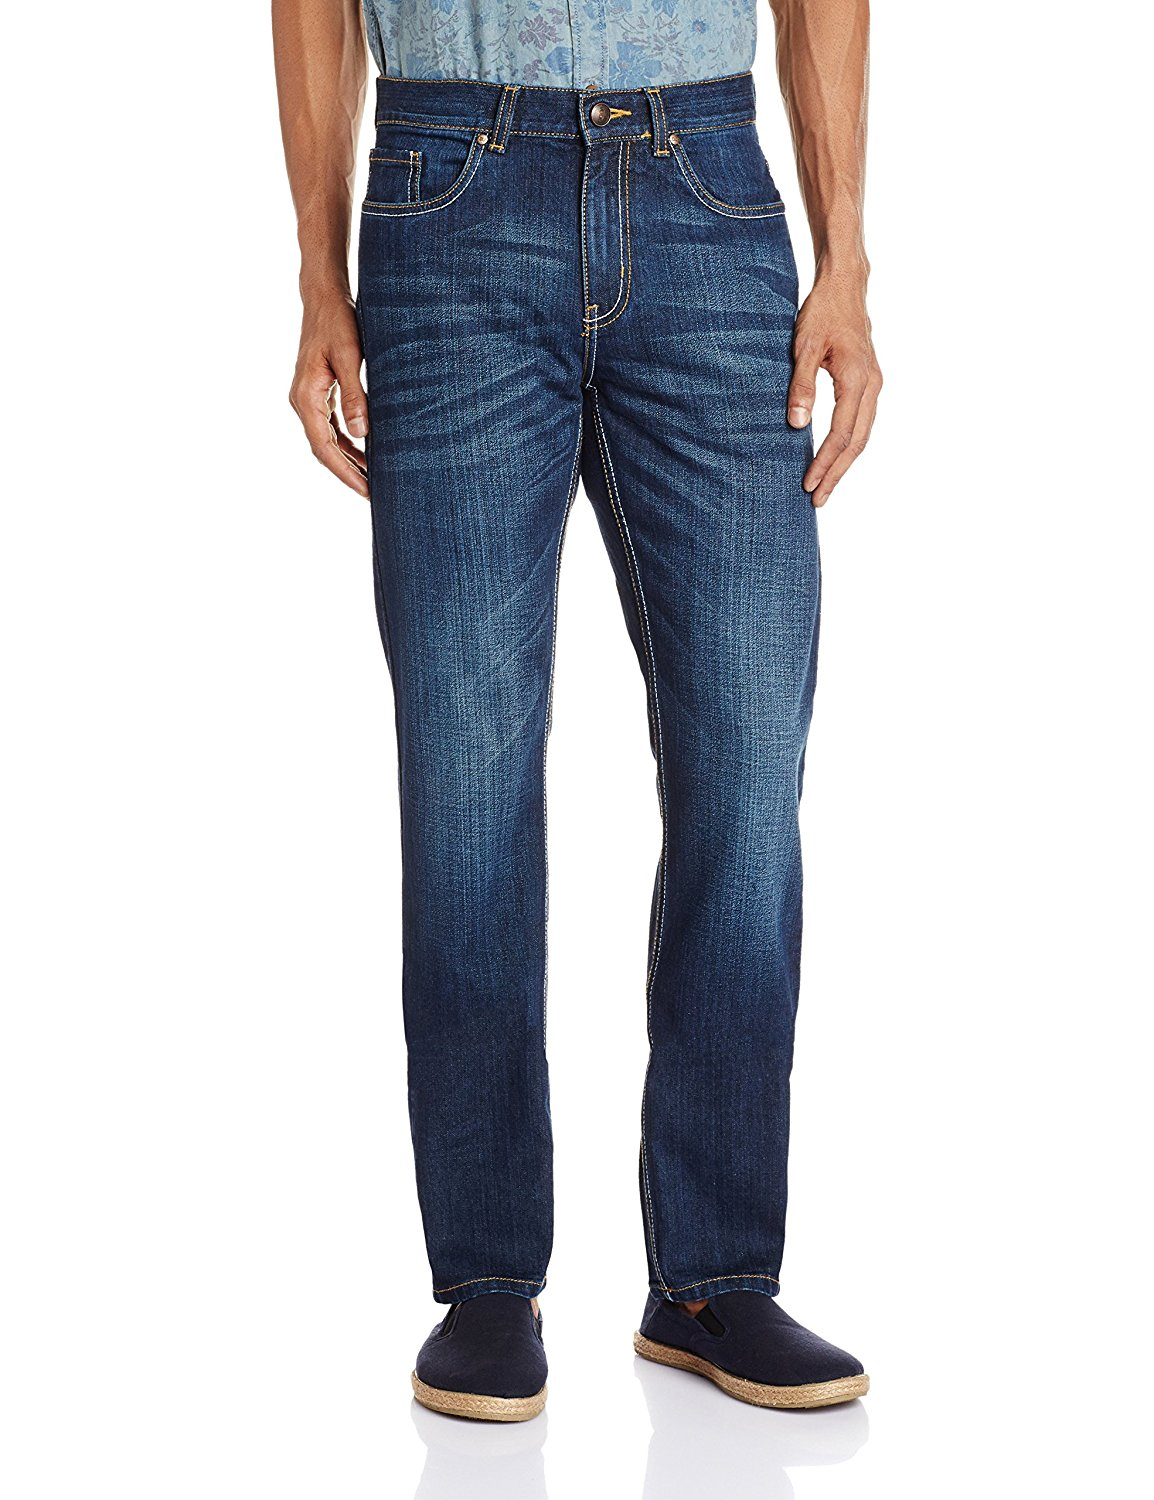 Buy Fulfilled by Amazon Jeans from Rs.299 only